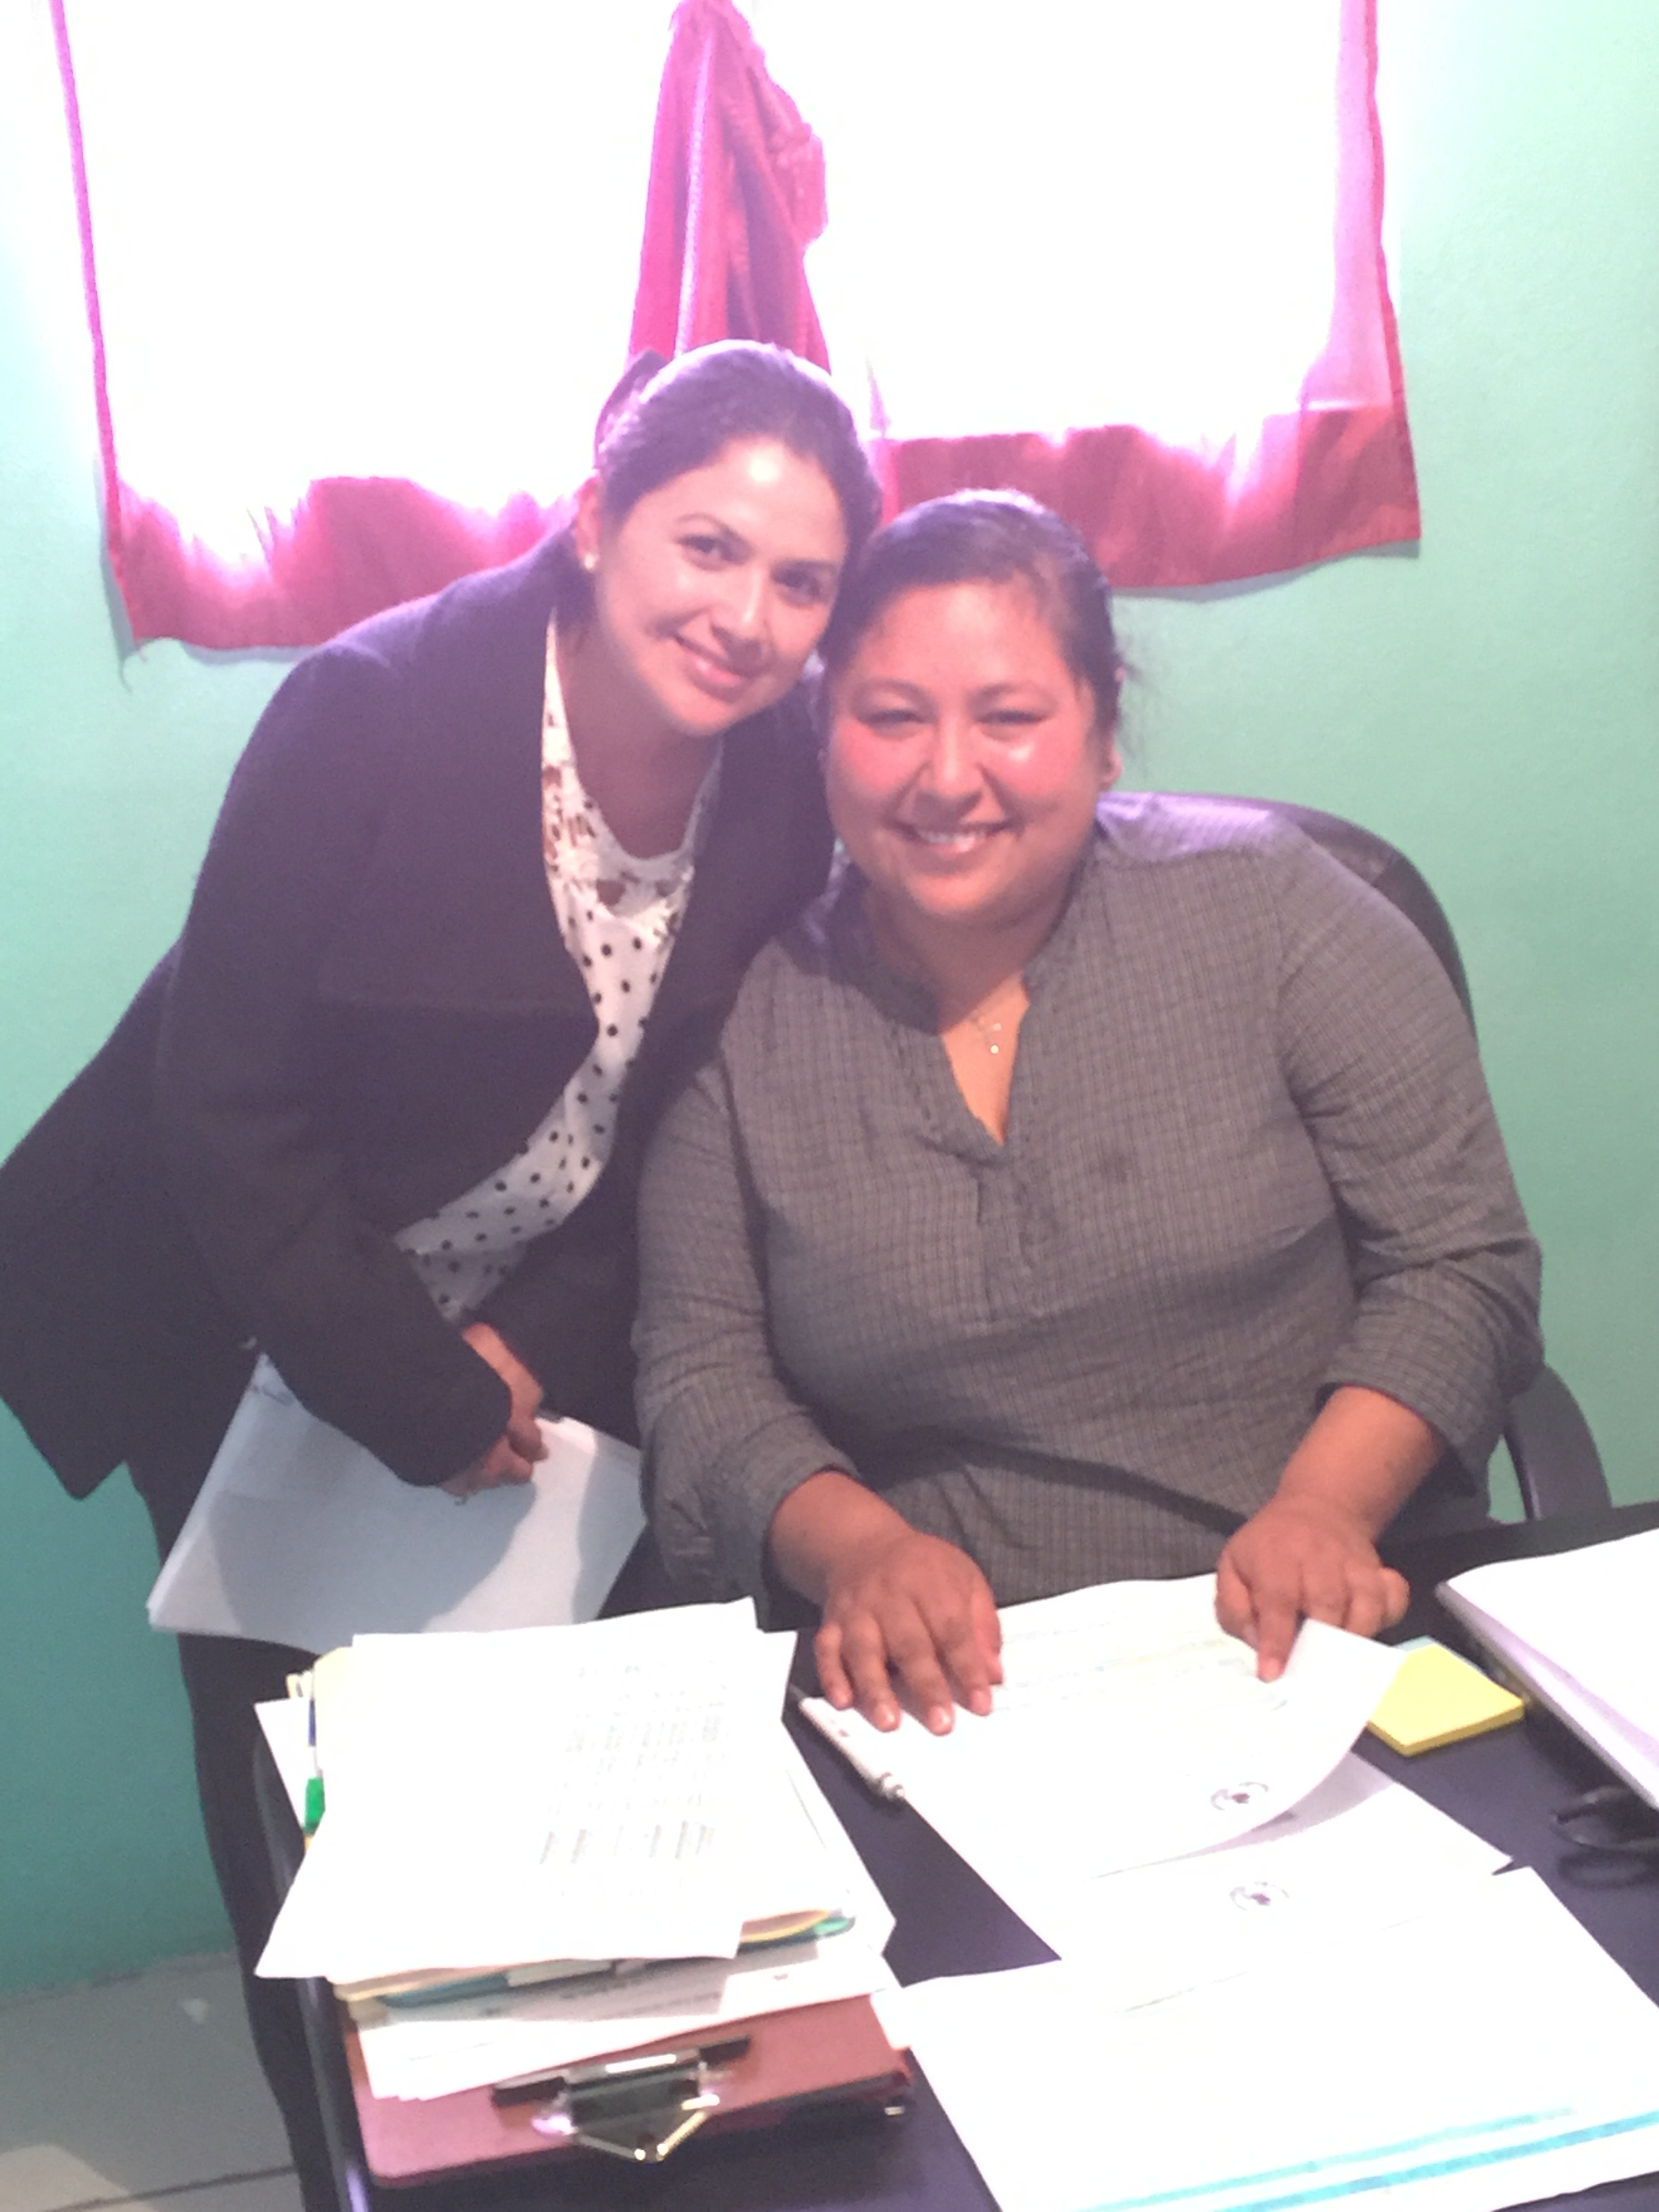 Lily and Analy doing paperwork